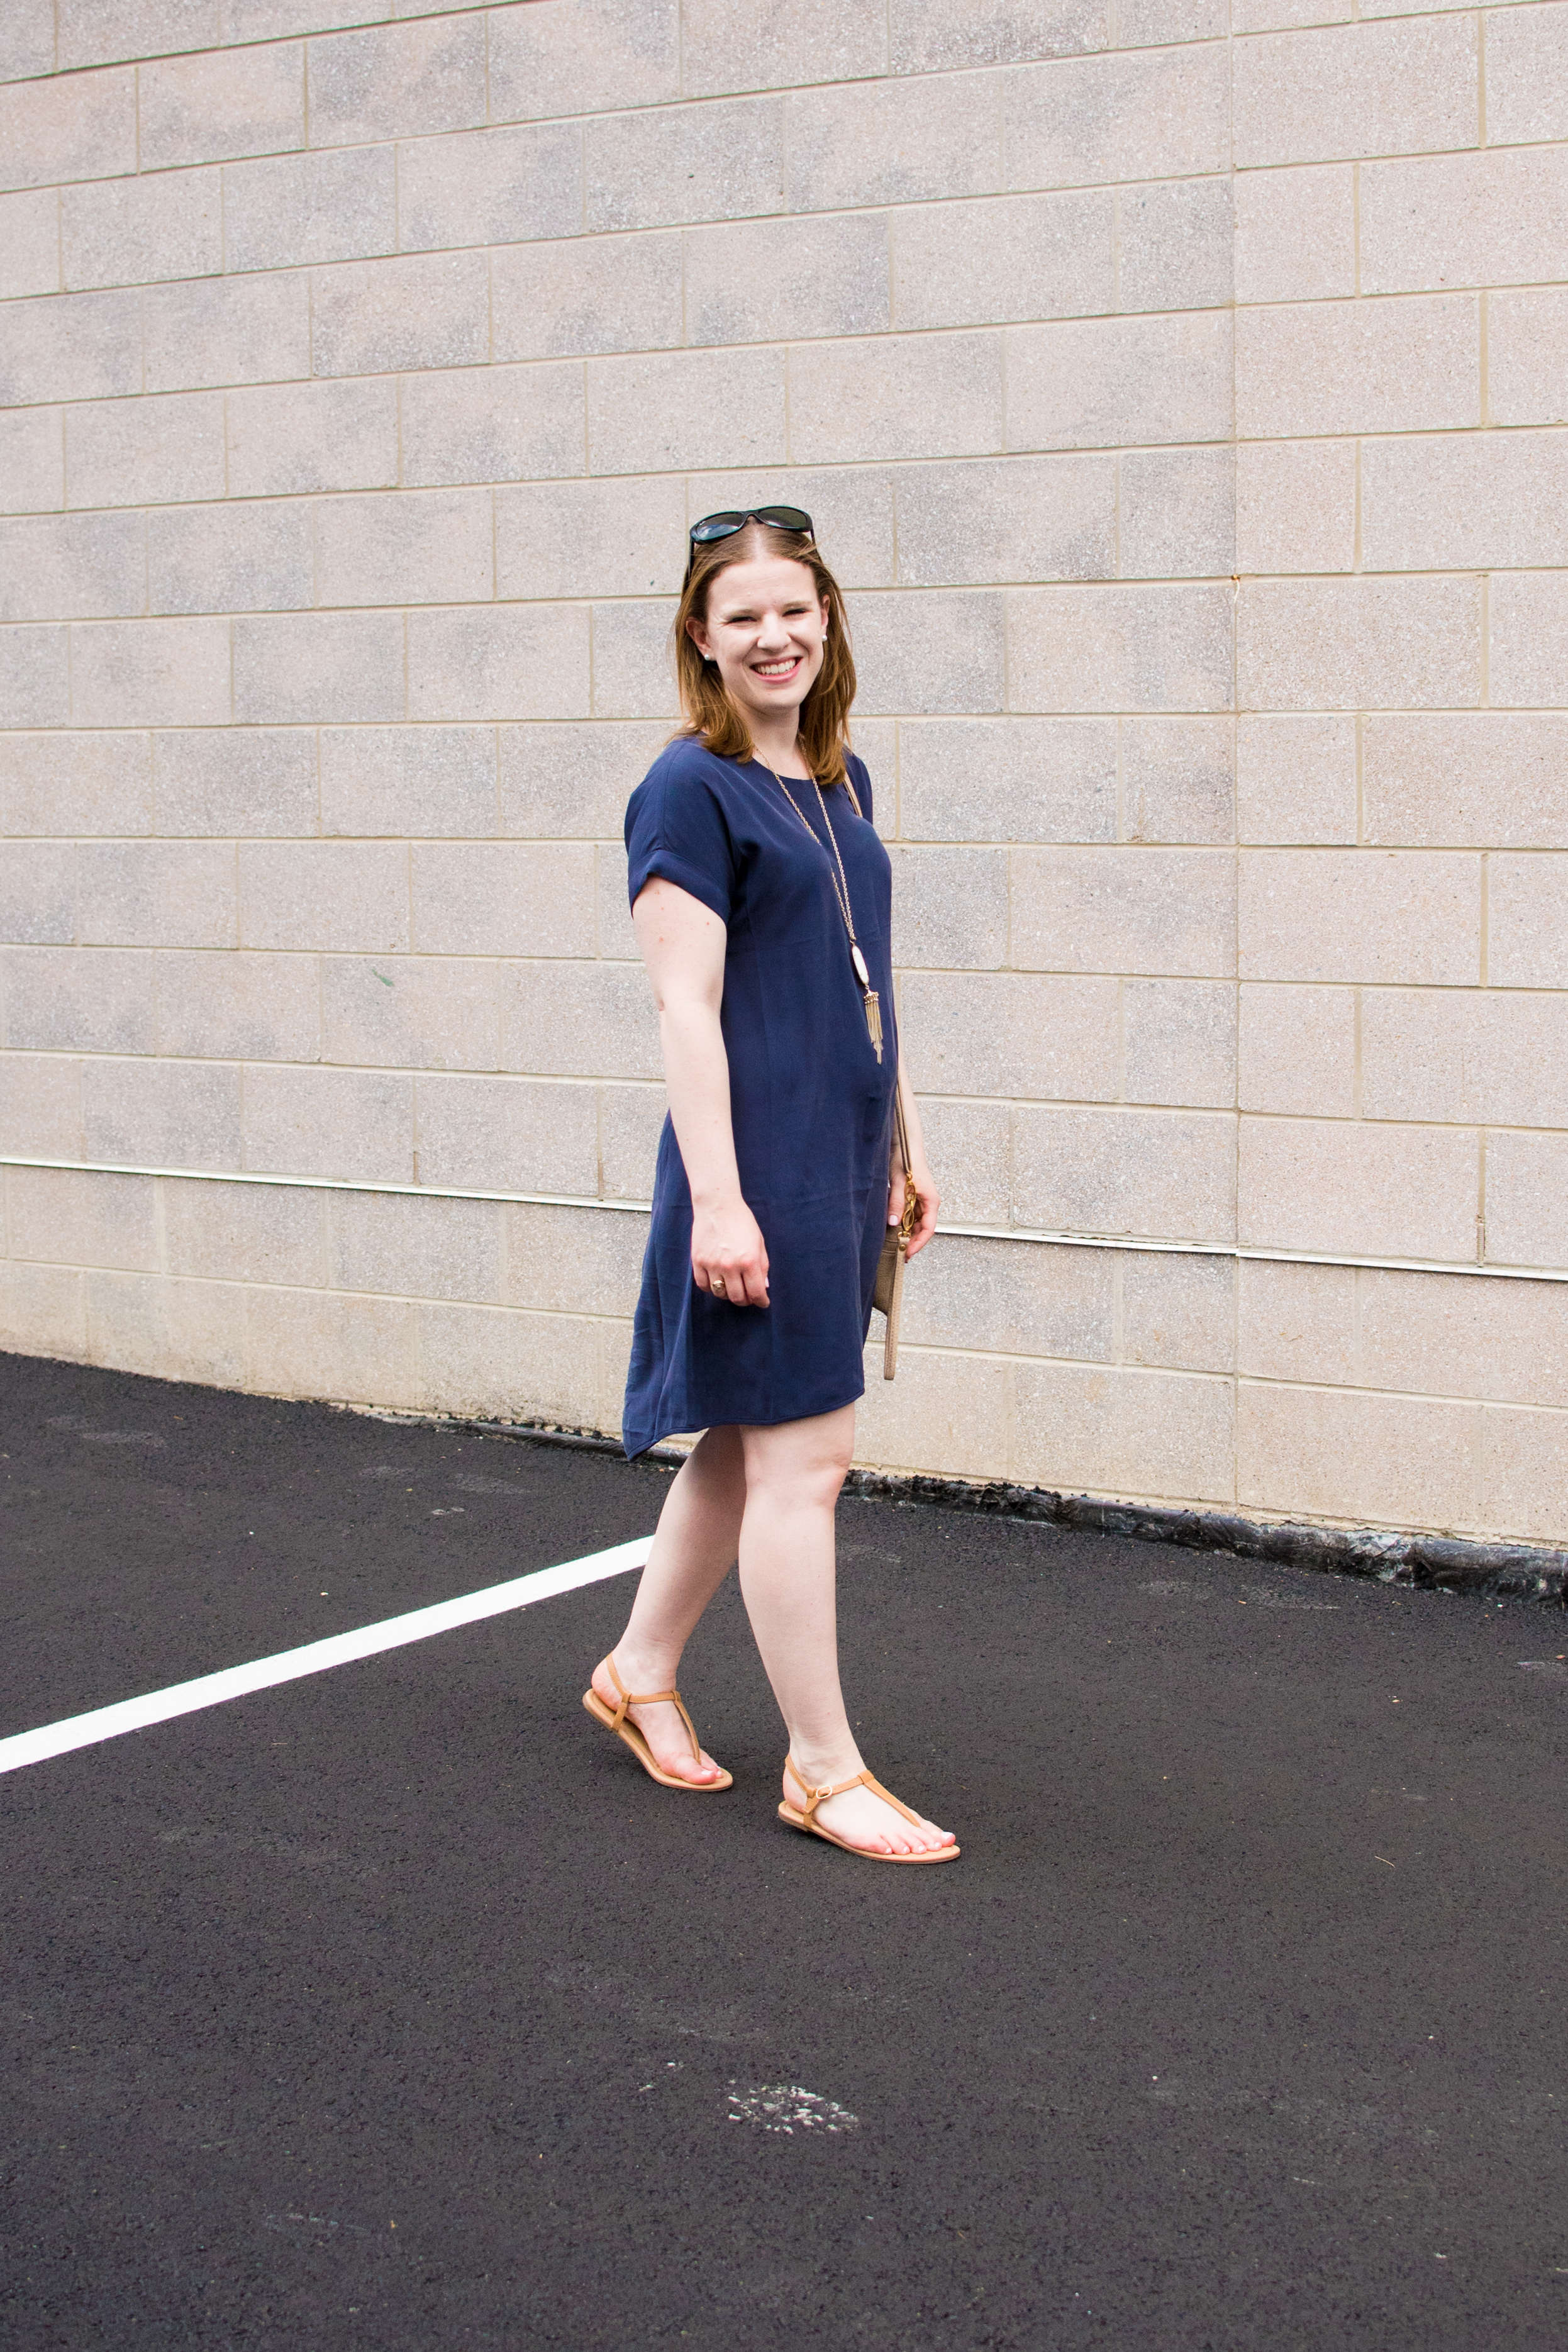 The Navy Shift Dress | Something Good, @danaerinw, women, fashion, clothing, style, summer style, clothes, women's clothing, summer fashion, everlane, tstrap sandals, nude sandals, dress